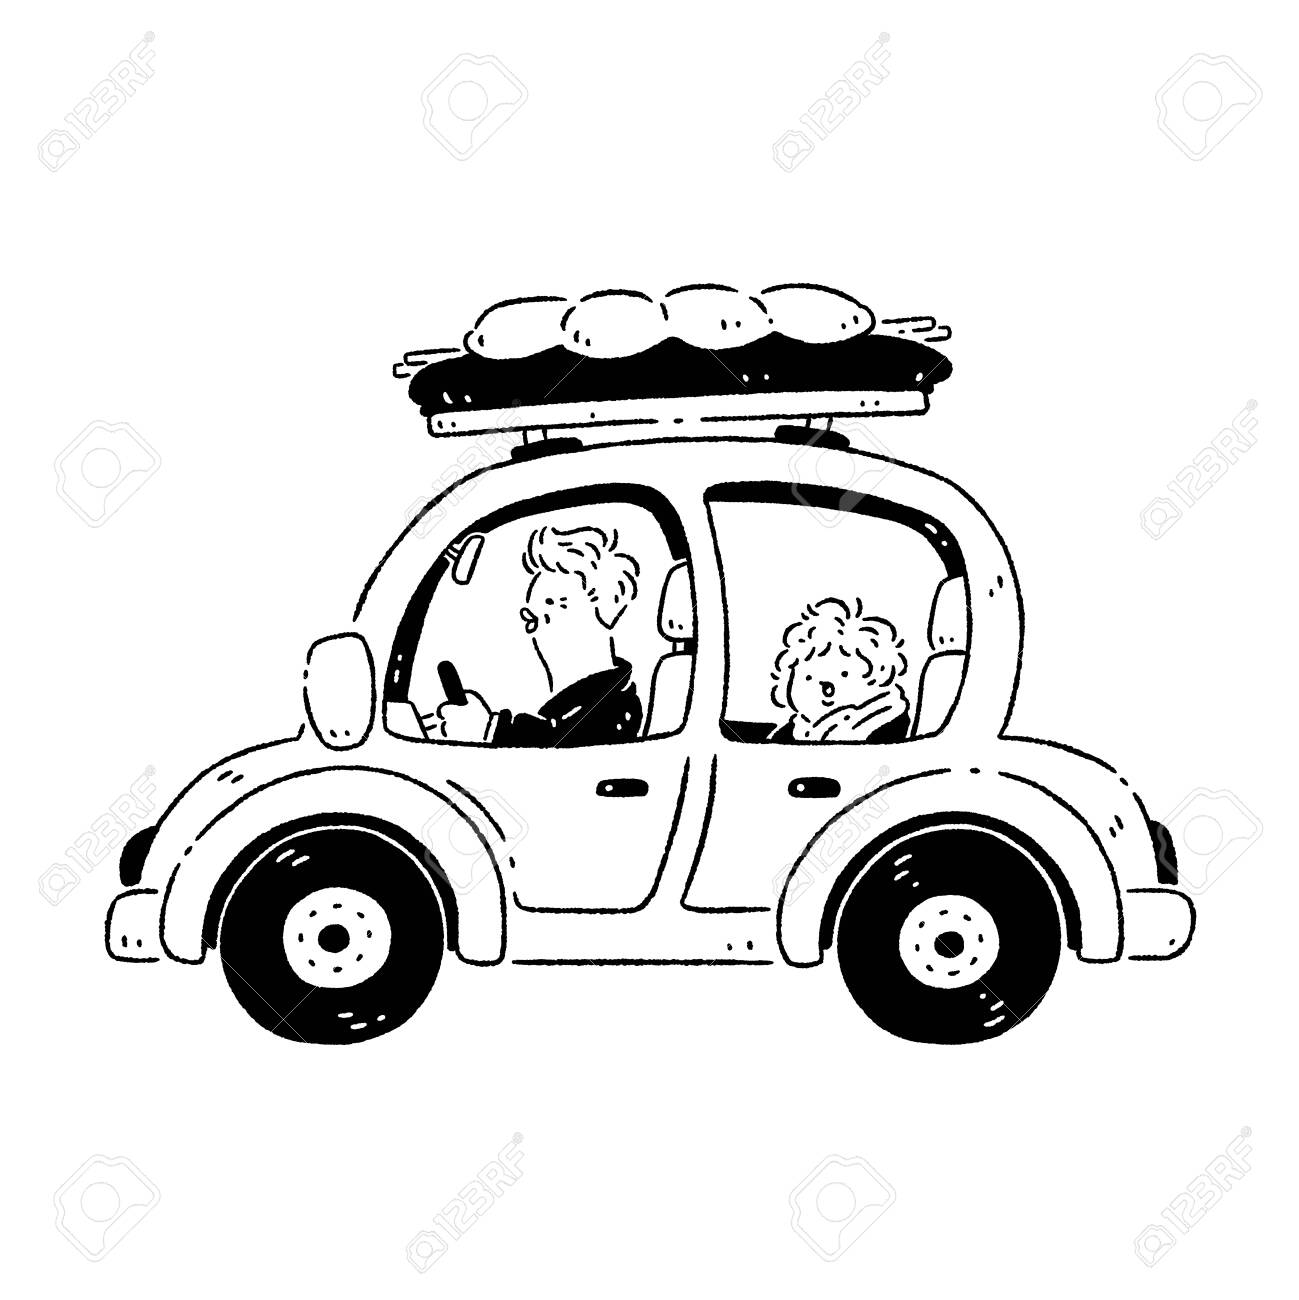 Couple driving a car to travel - 128854675